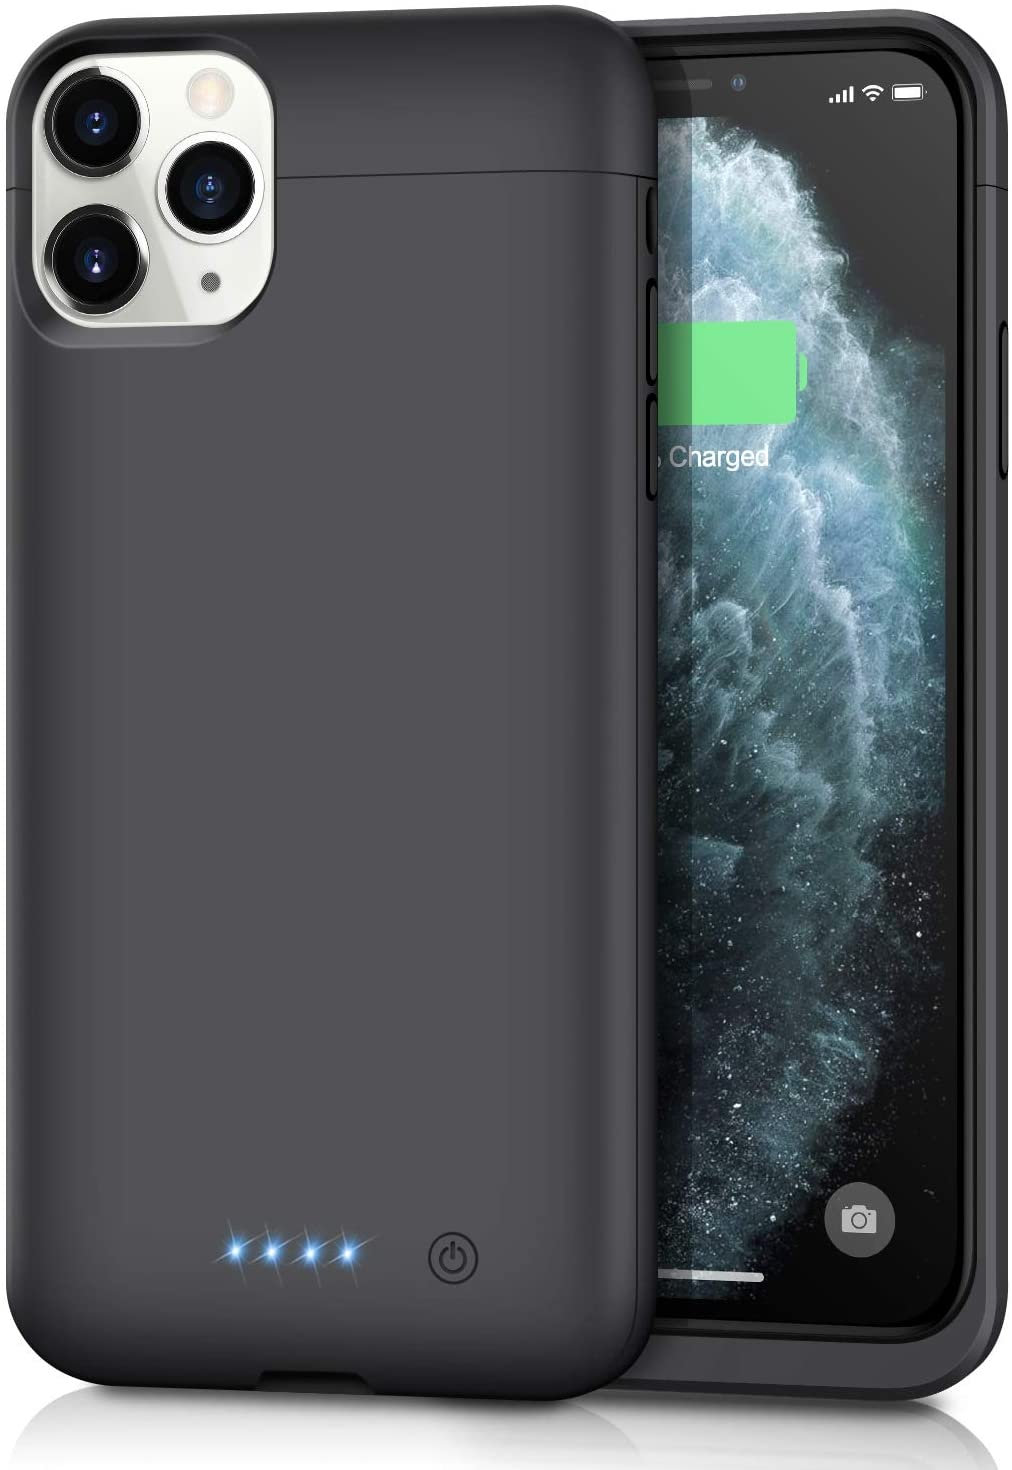 Battery Case for iPhone 11 Pro Max, Upgraded 6500mAh Portable Charging Case Protective Charger Case Extended Battery Pack for iPhone 11 Pro Max [6.5 inch]-Black